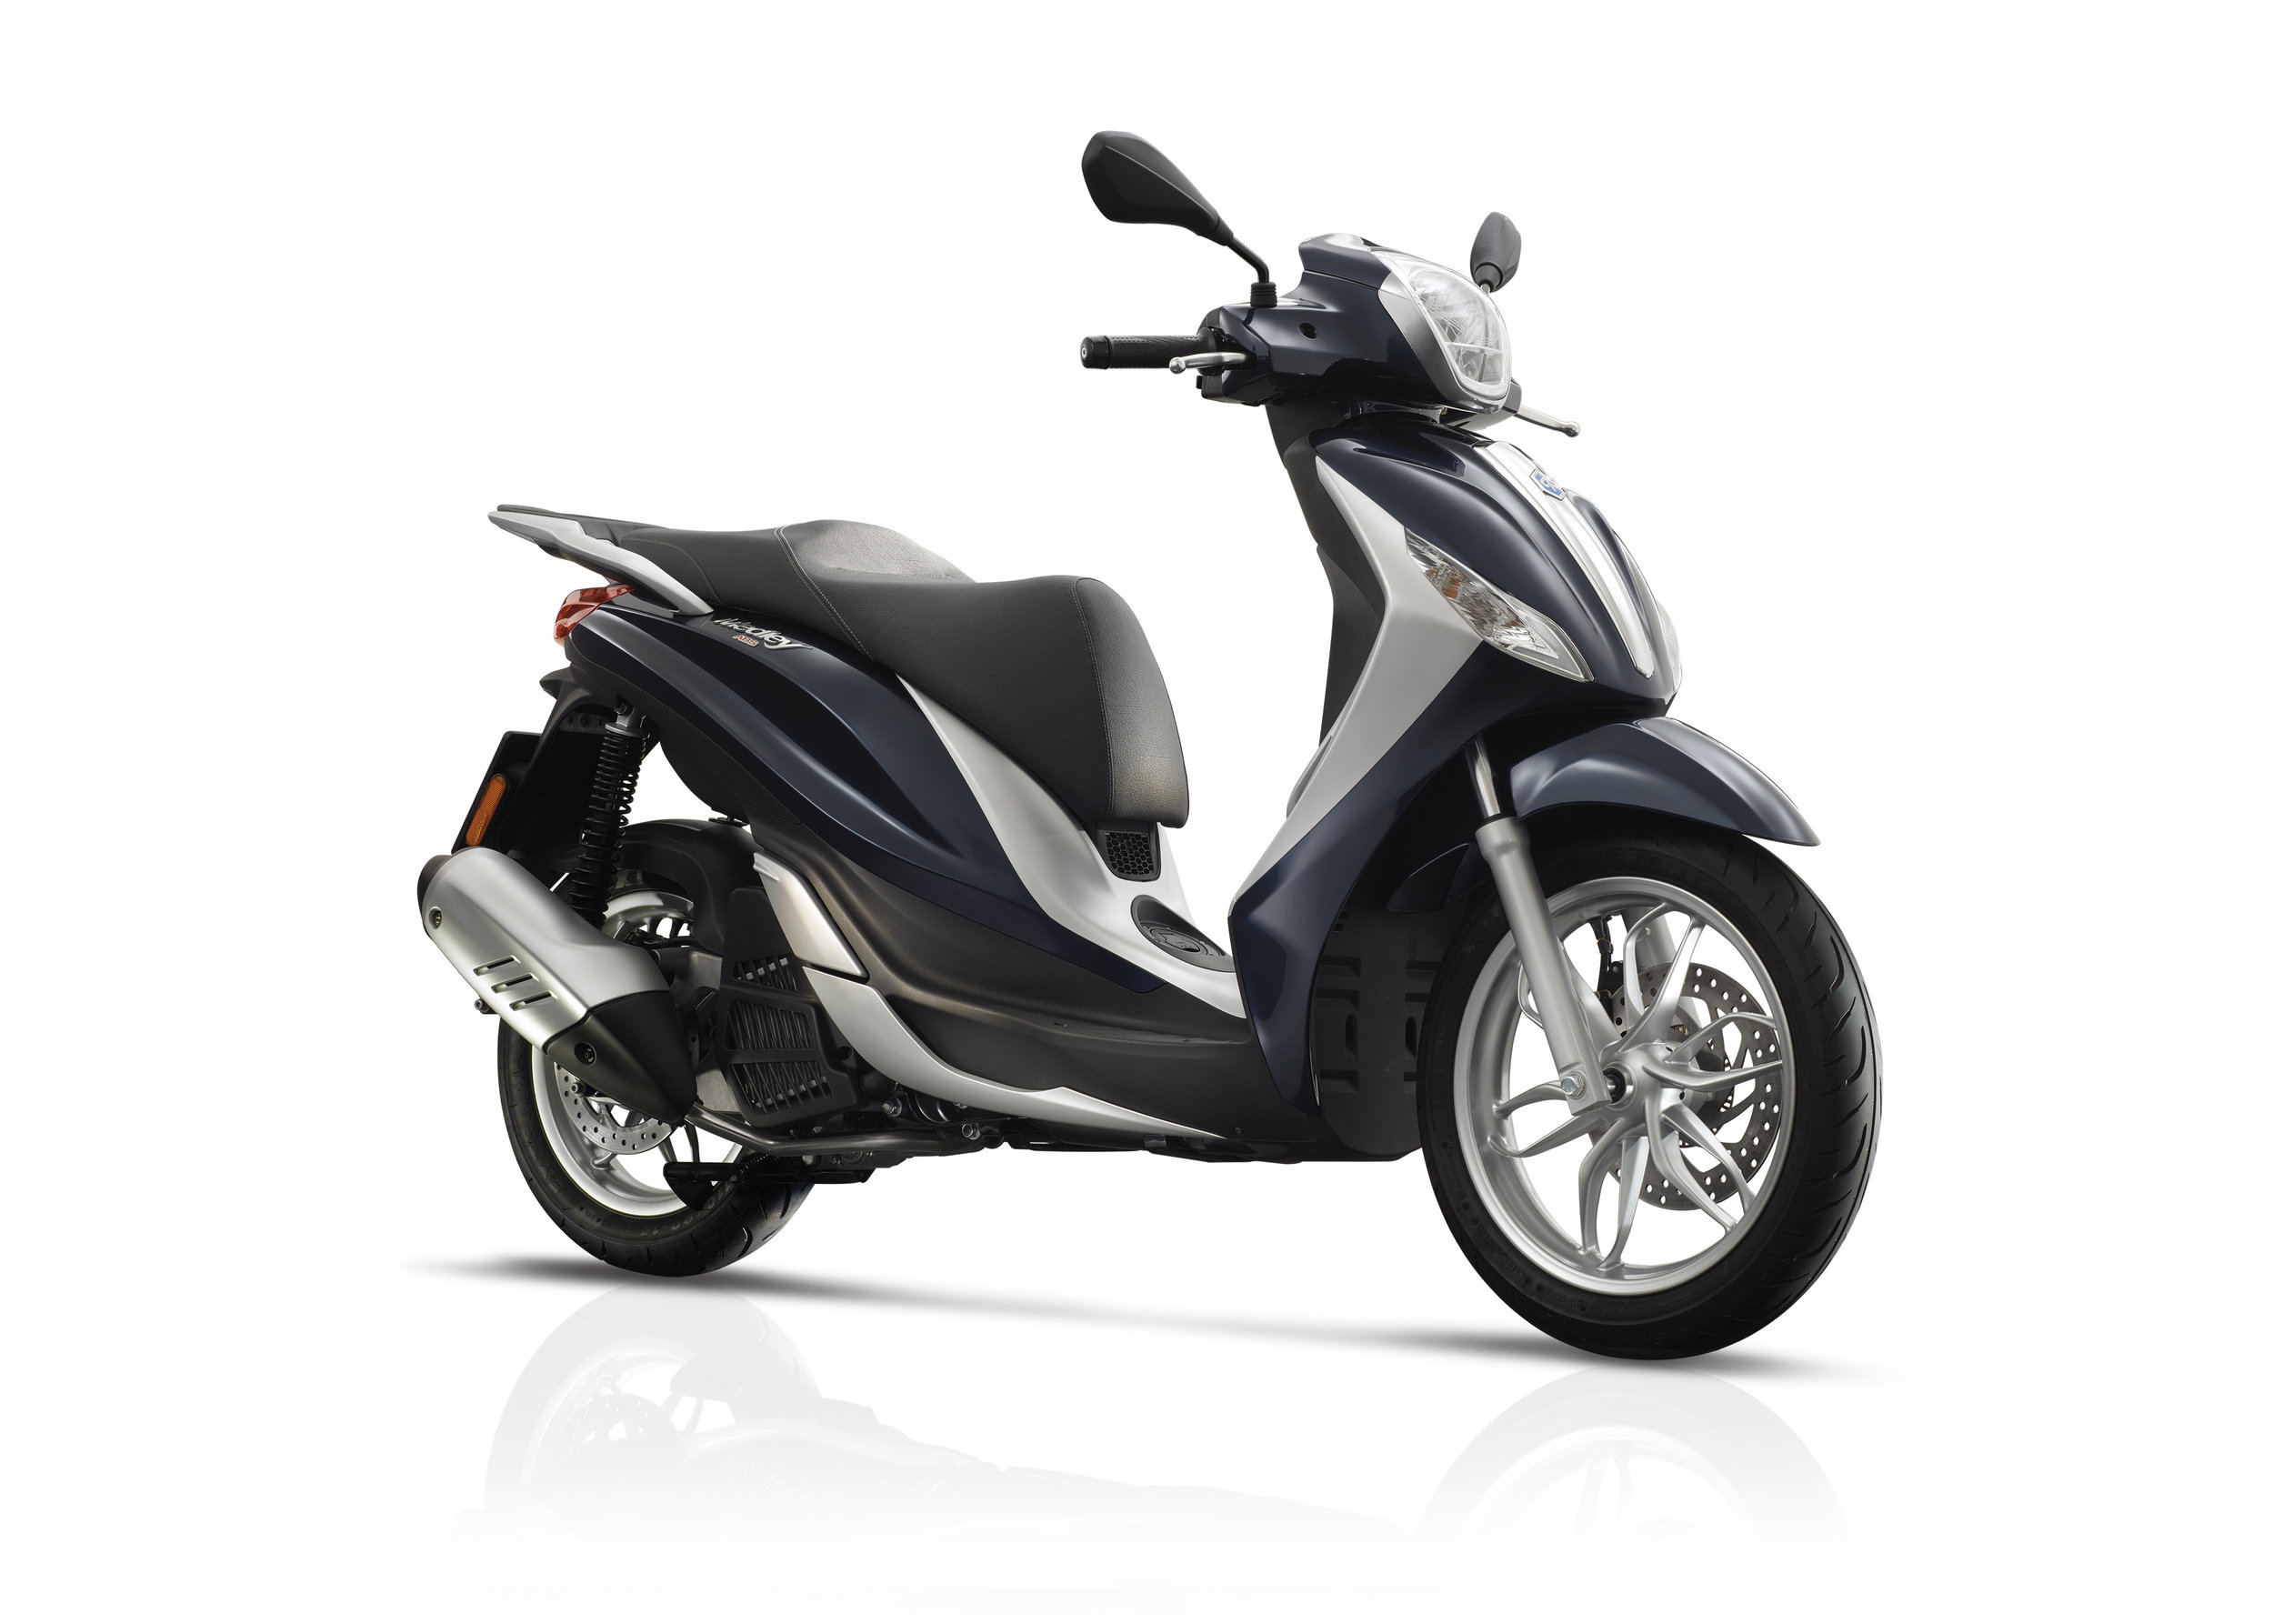 Piaggio Medley 125 equipped lateral dx 07.jpg